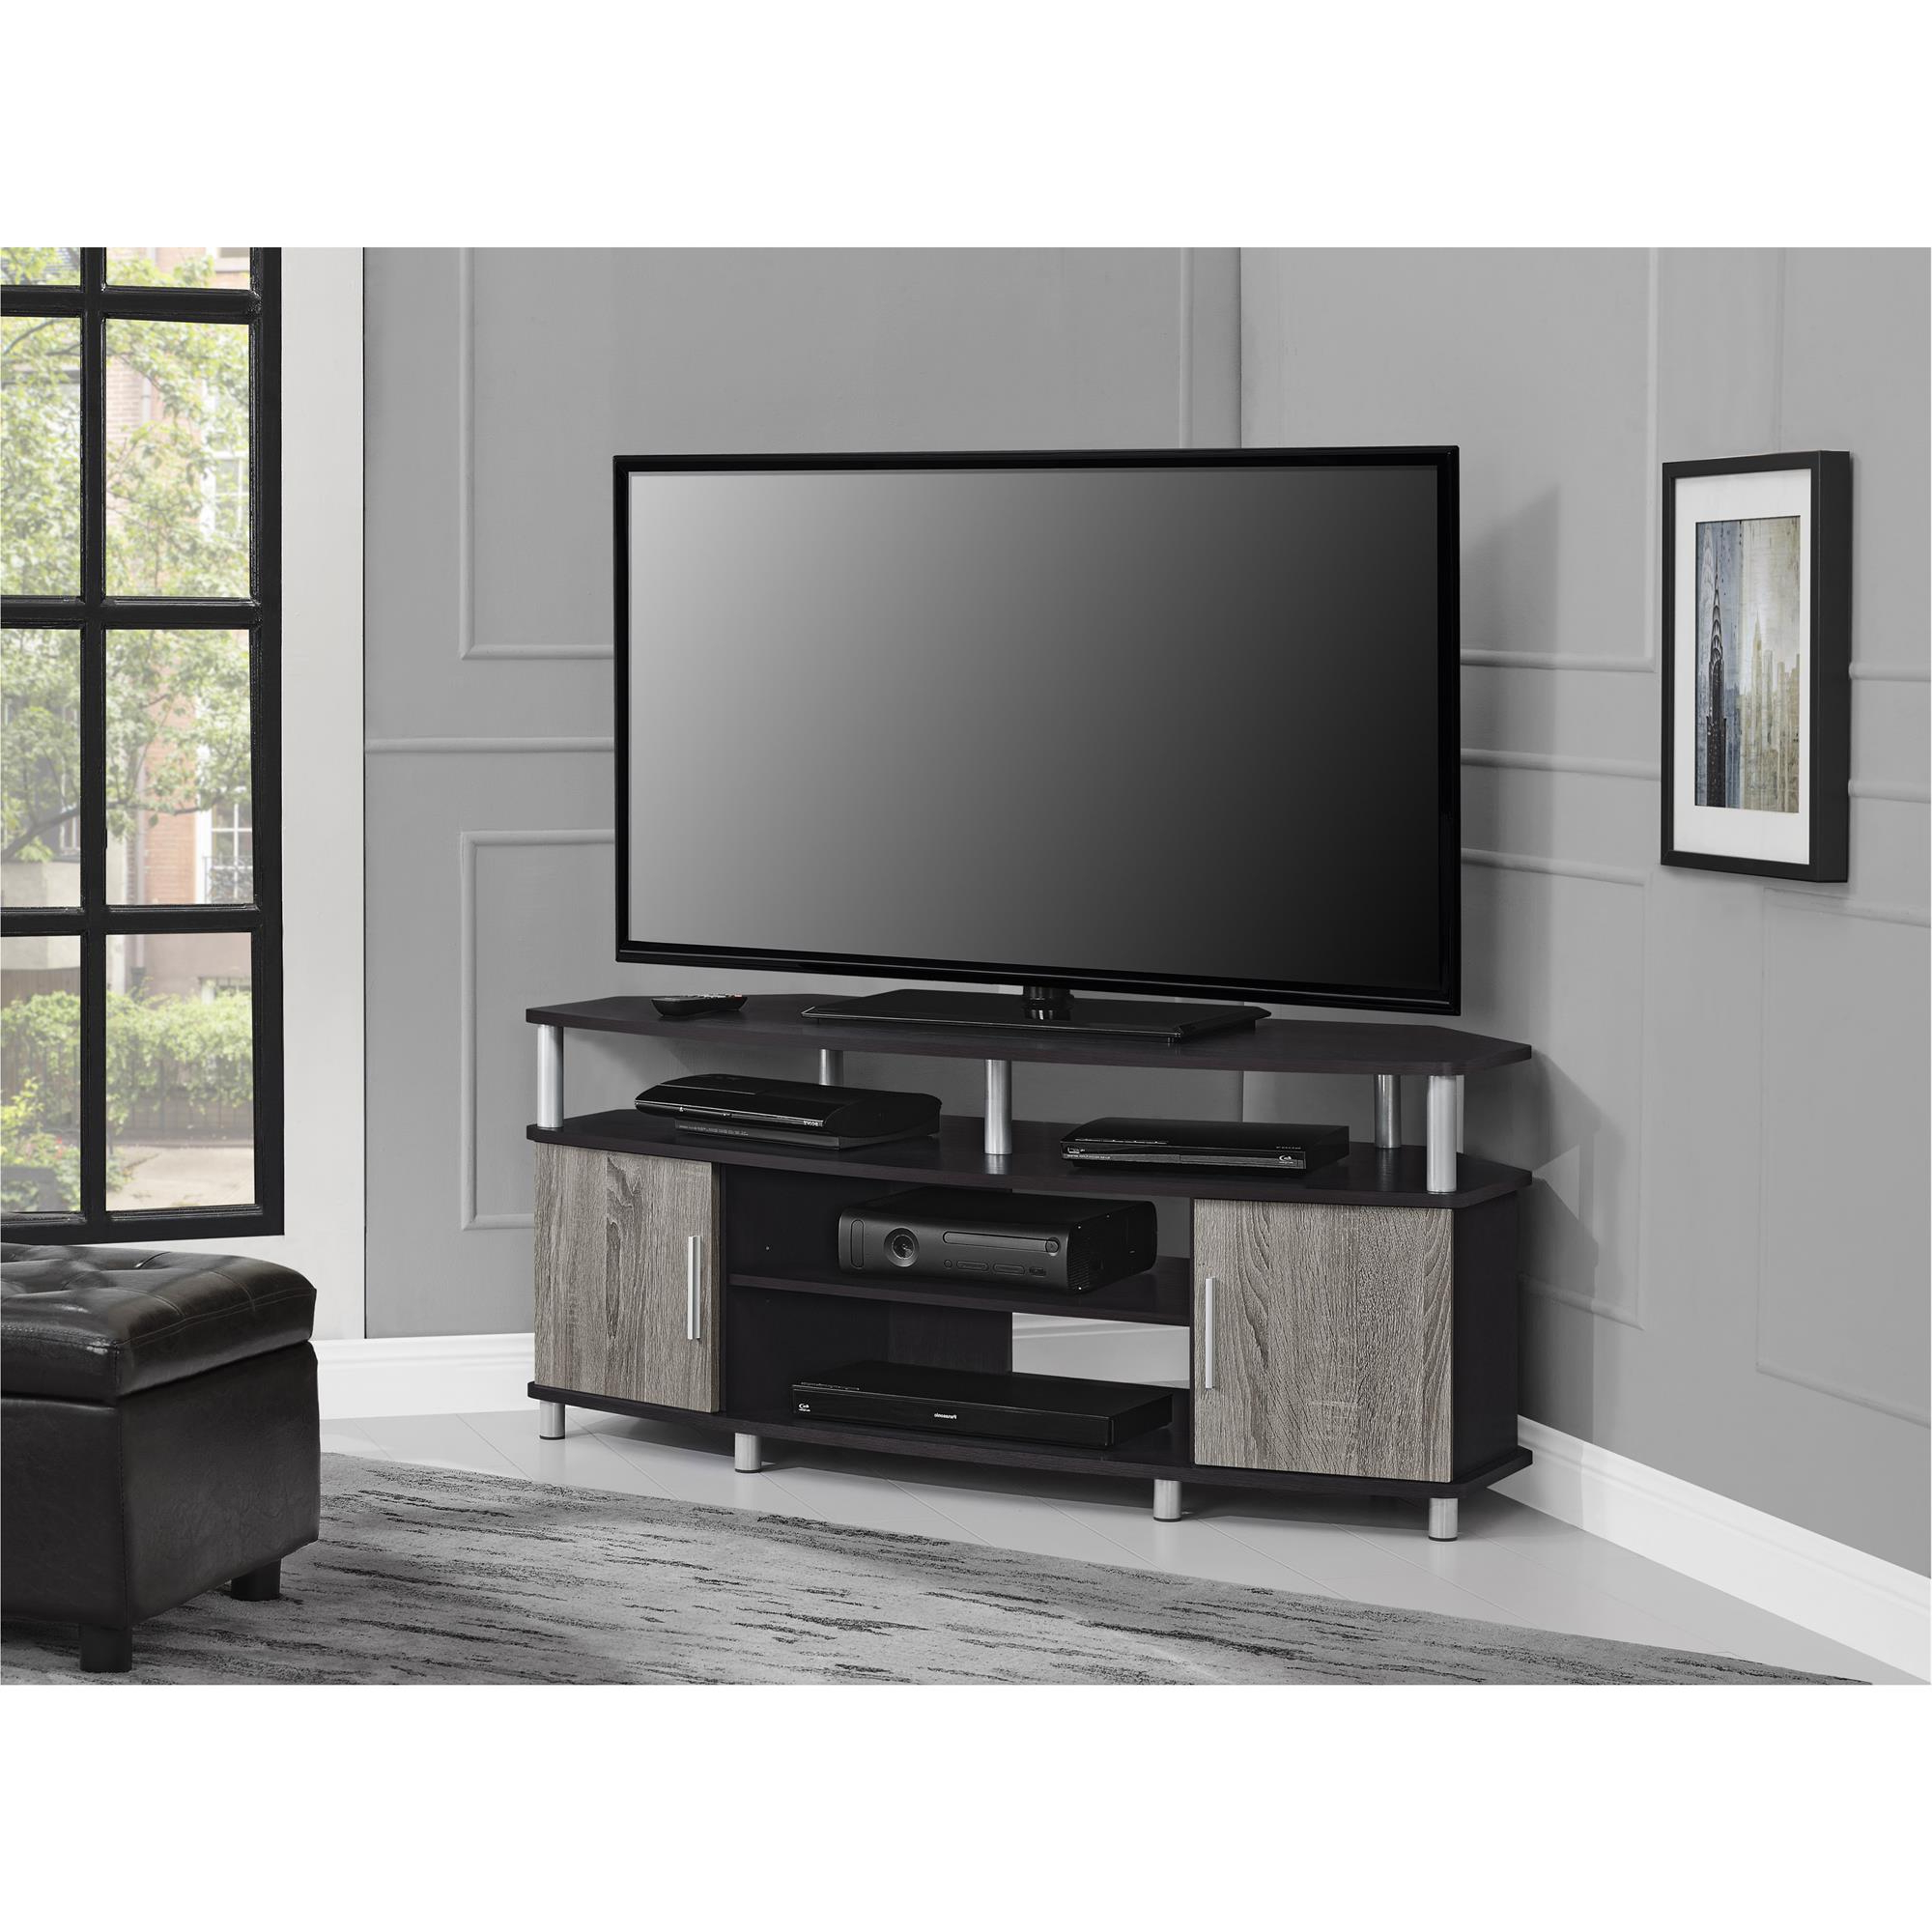 Fashionable Small Corner Tv Stand Entertainment Center Ikea Tall 60 Inch With Throughout Corner Tv Stands For 60 Inch Tv (View 12 of 20)